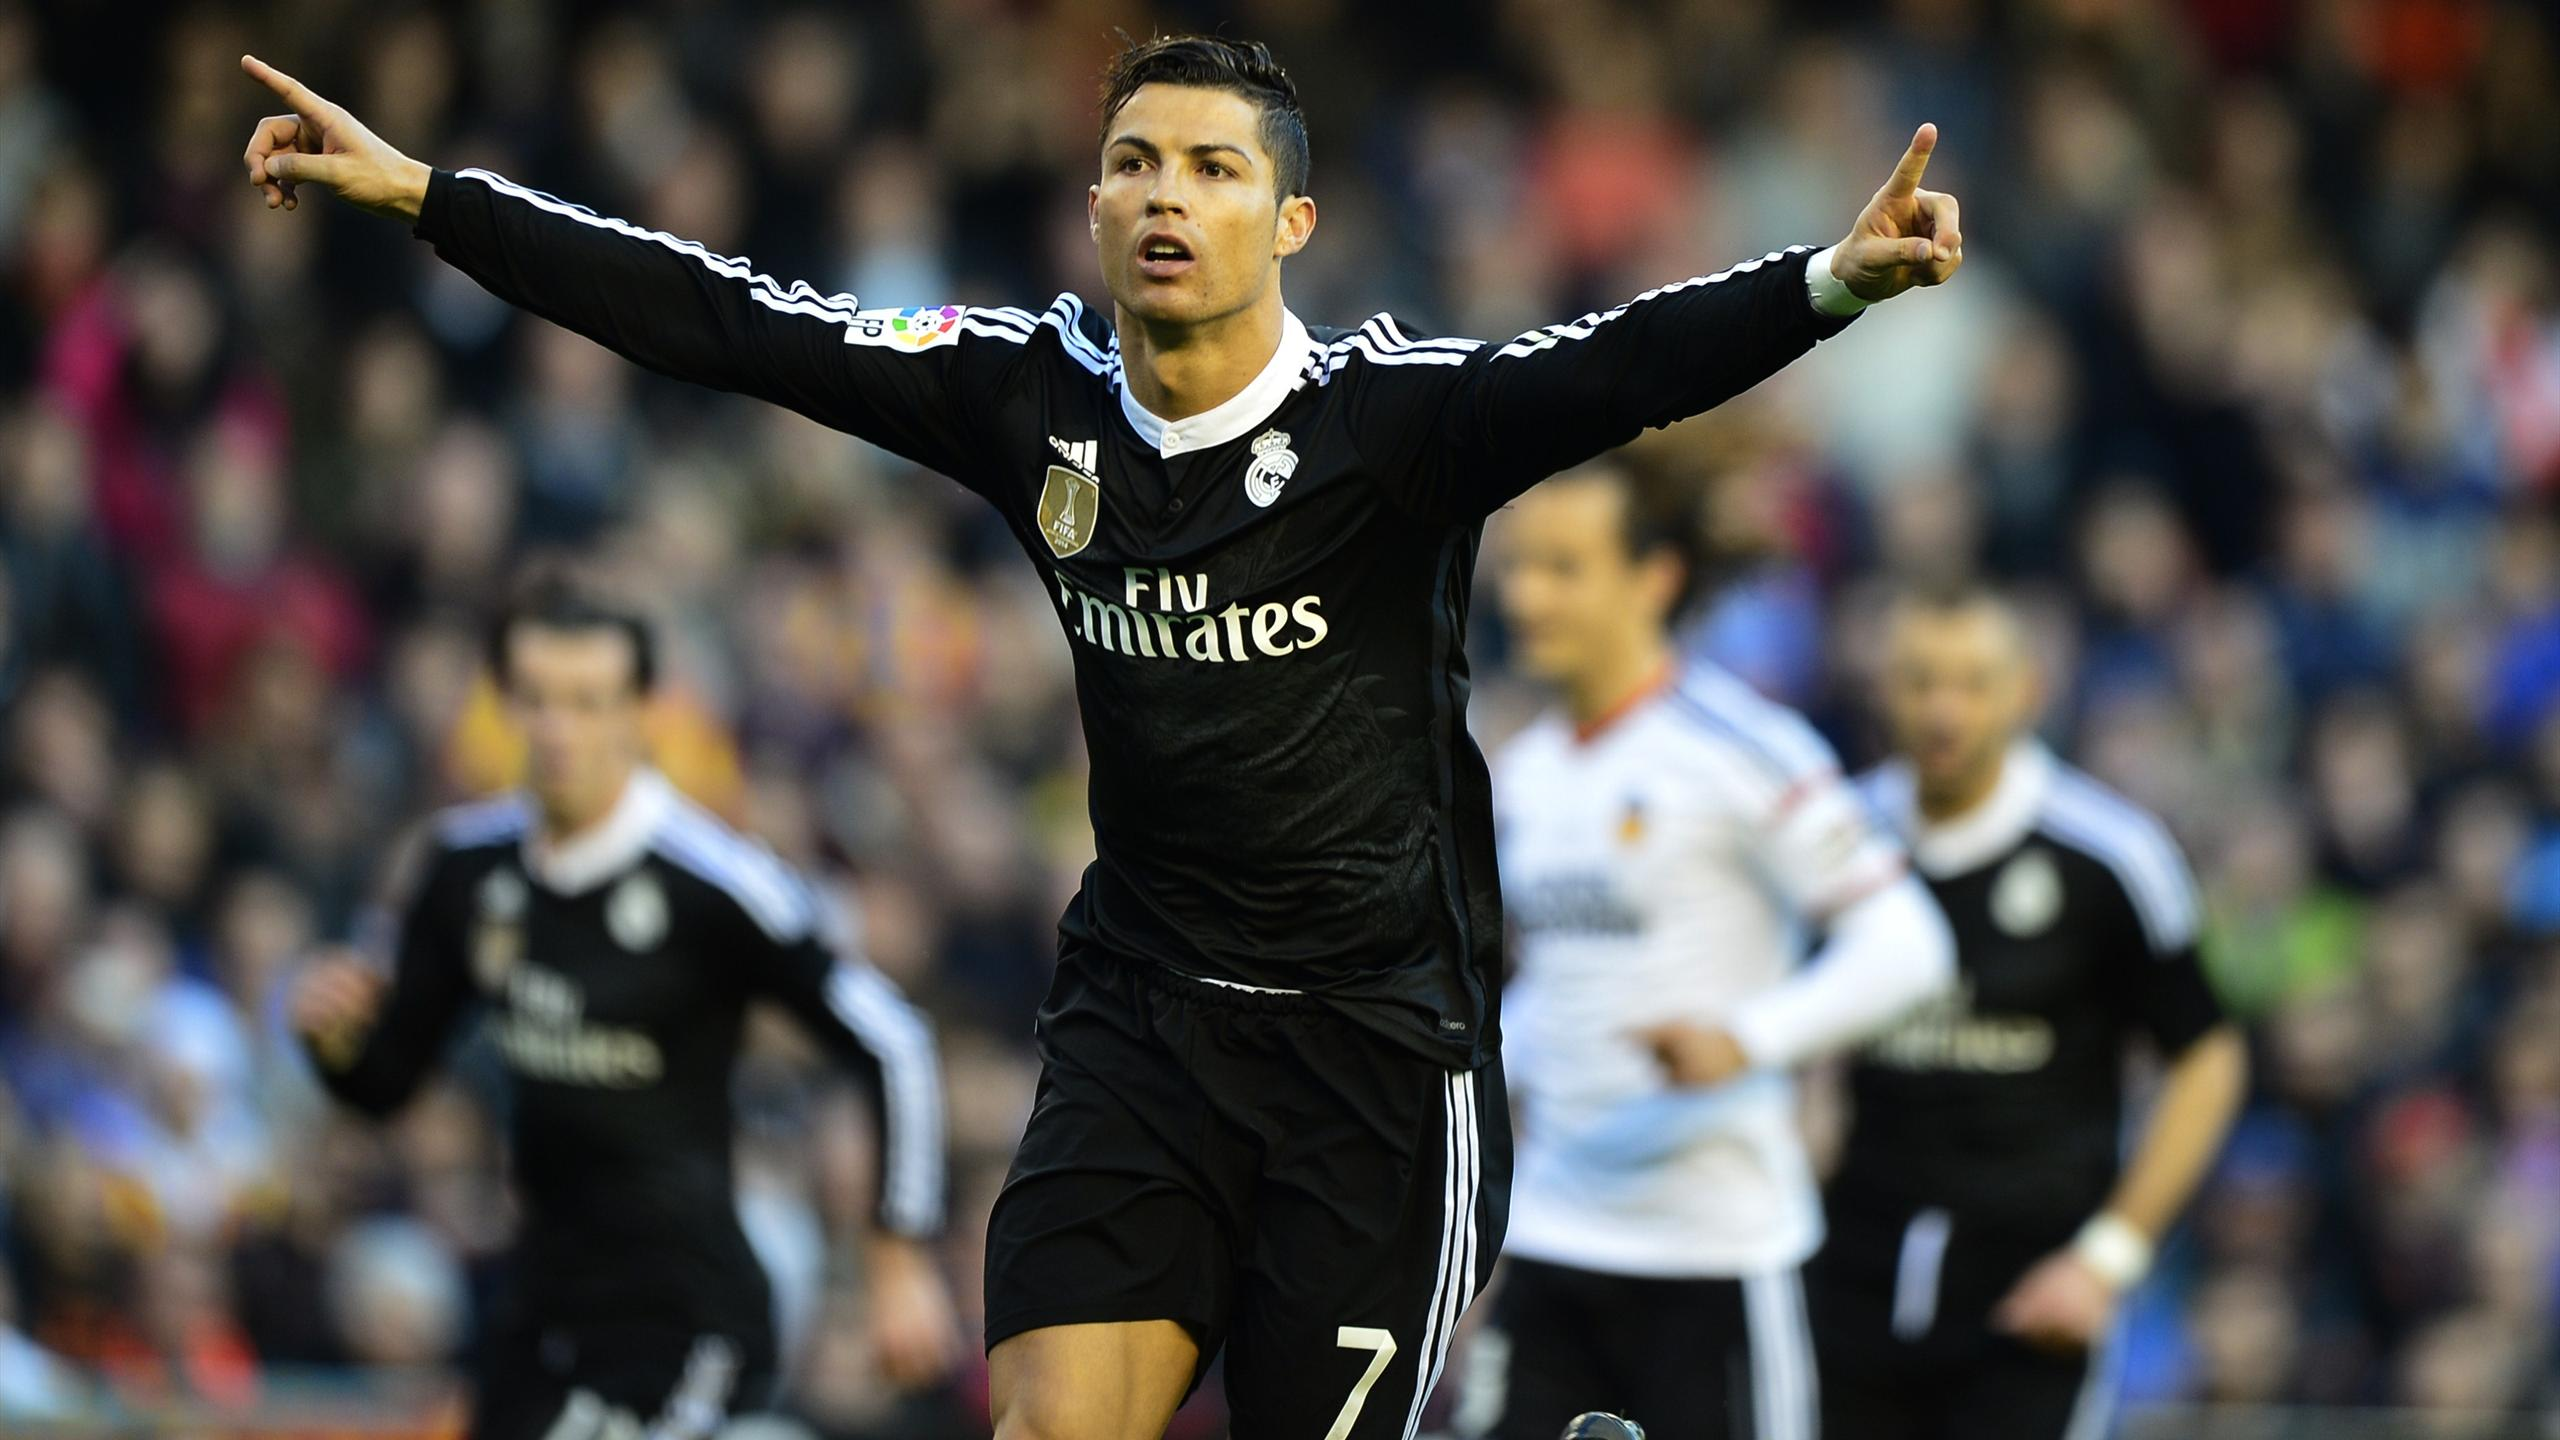 Real Madrid's Portuguese forward Cristiano Ronaldo celebrates his 287th goal in Europe's 'big five' leagues during the Spanish league football match Valencia CF v Real Madrid CF